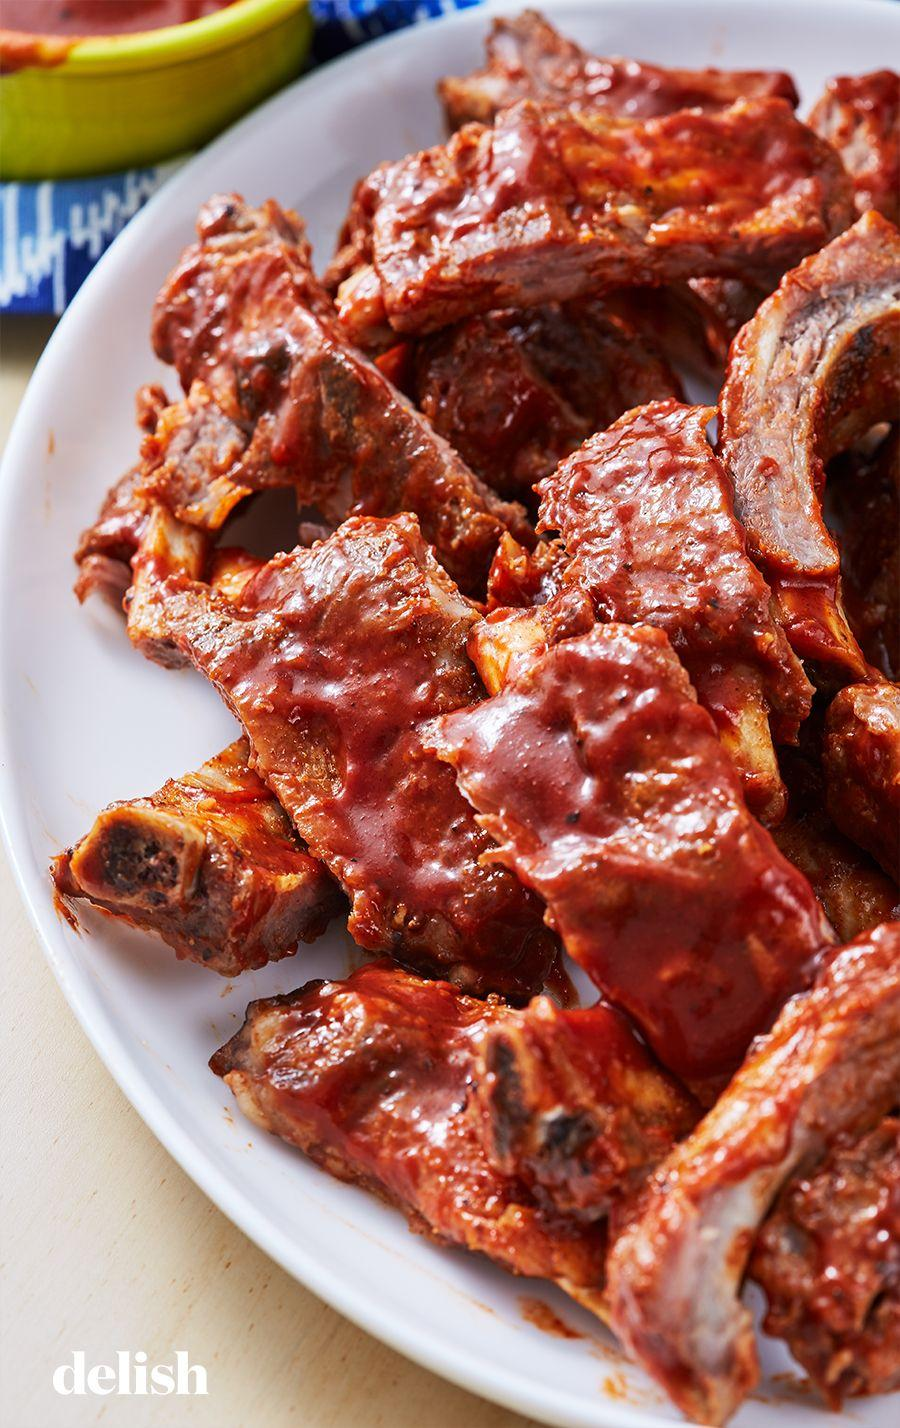 "<p>The absolute fastest way to fall-off-the-bone ribs.</p><p>Get the recipe from <a href=""https://www.delish.com/cooking/recipe-ideas/a27044004/instant-pot-ribs-recipe/"" rel=""nofollow noopener"" target=""_blank"" data-ylk=""slk:Delish"" class=""link rapid-noclick-resp"">Delish</a>.</p>"